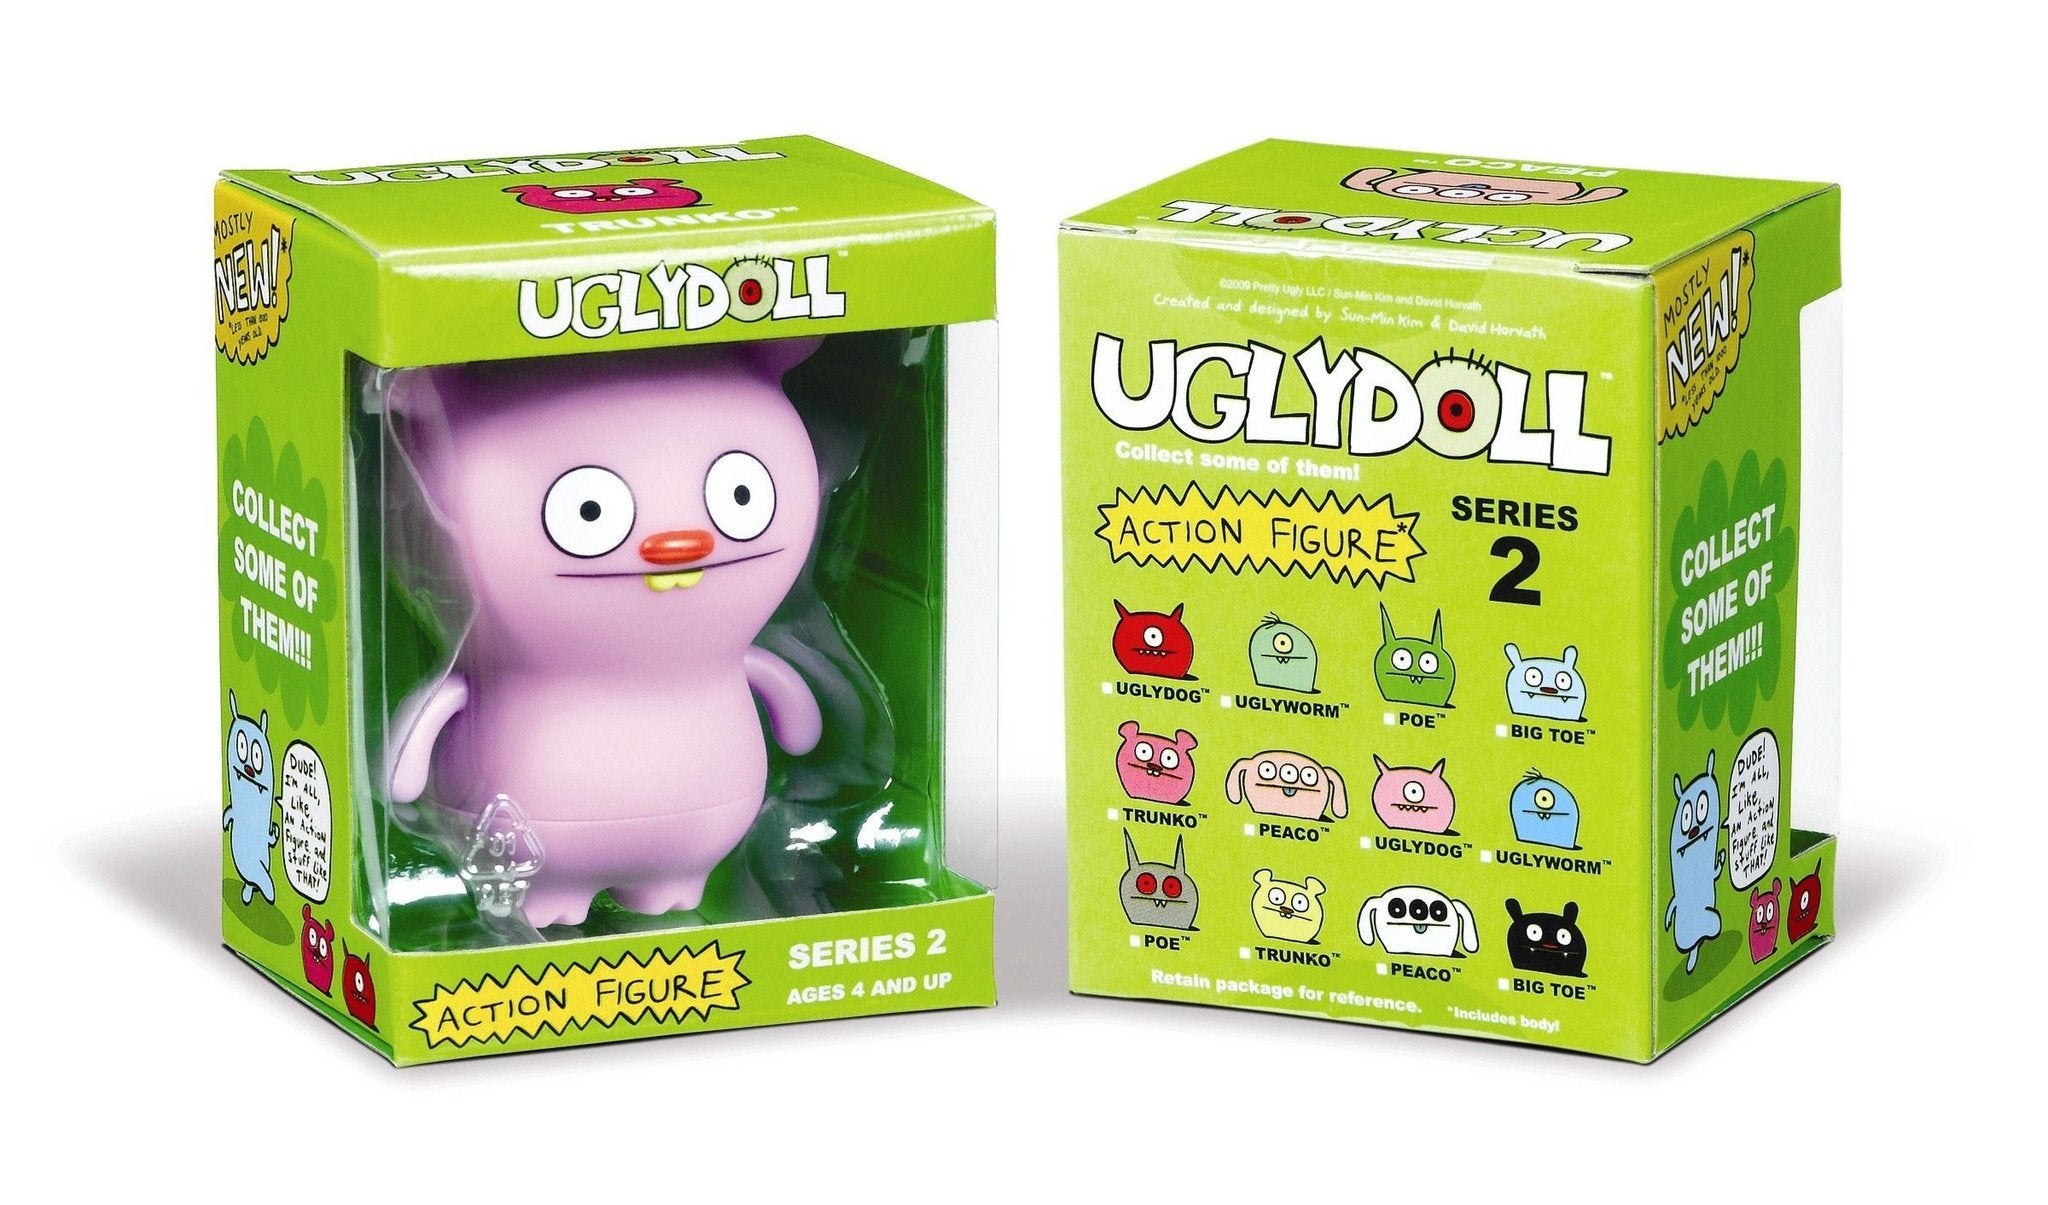 Uglydoll Action Figures Series 2 (Case of 12) - Fugitive Toys